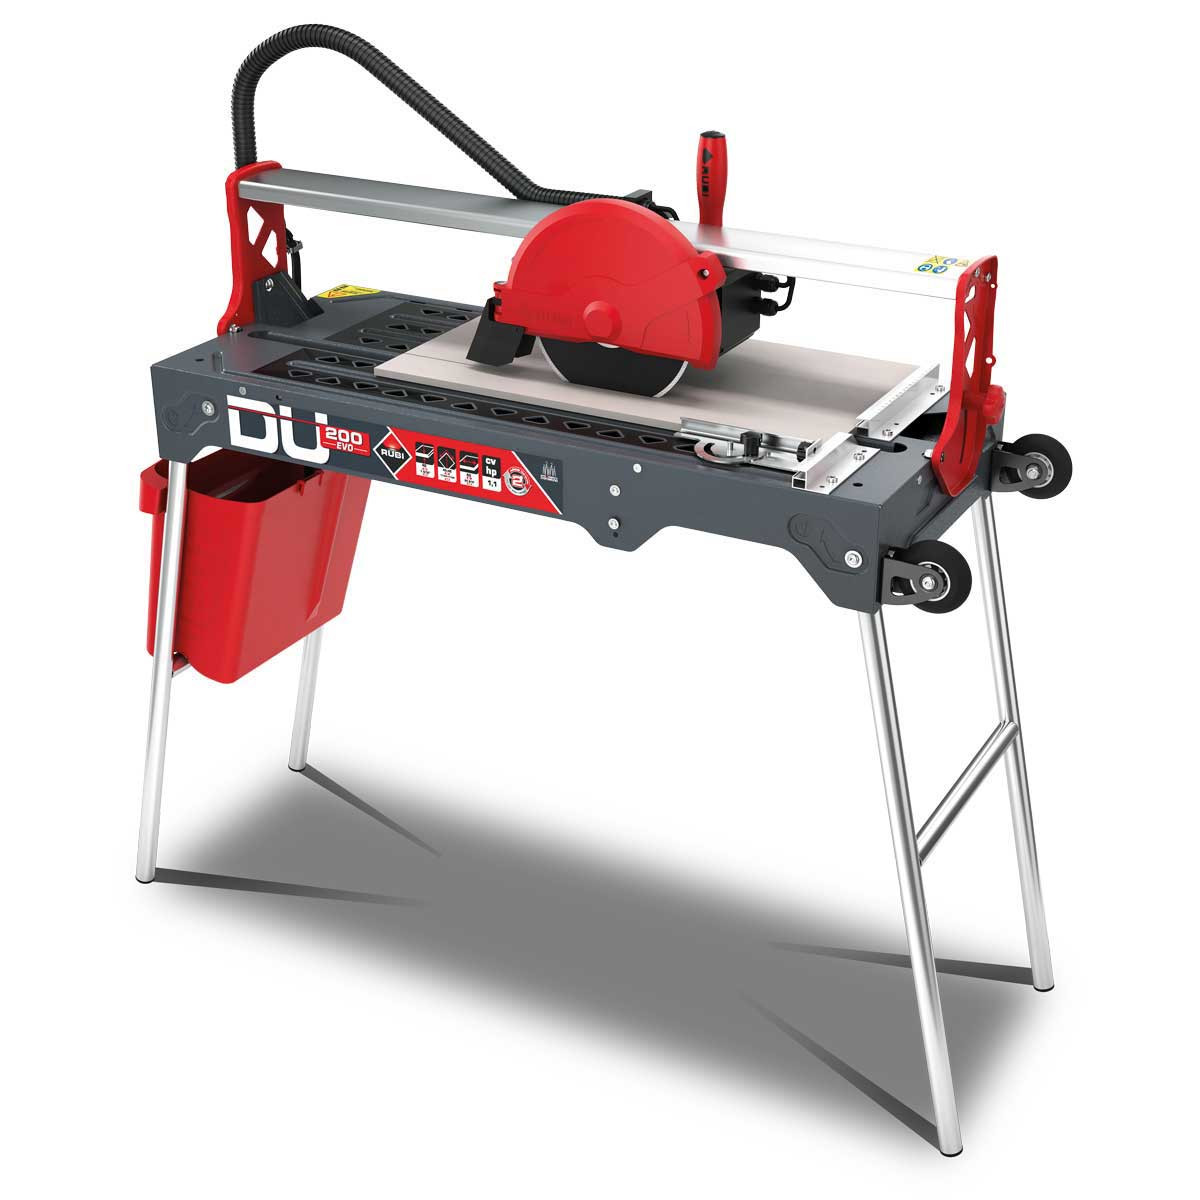 Rubi Diamant DU-200 EVO Tile Saw